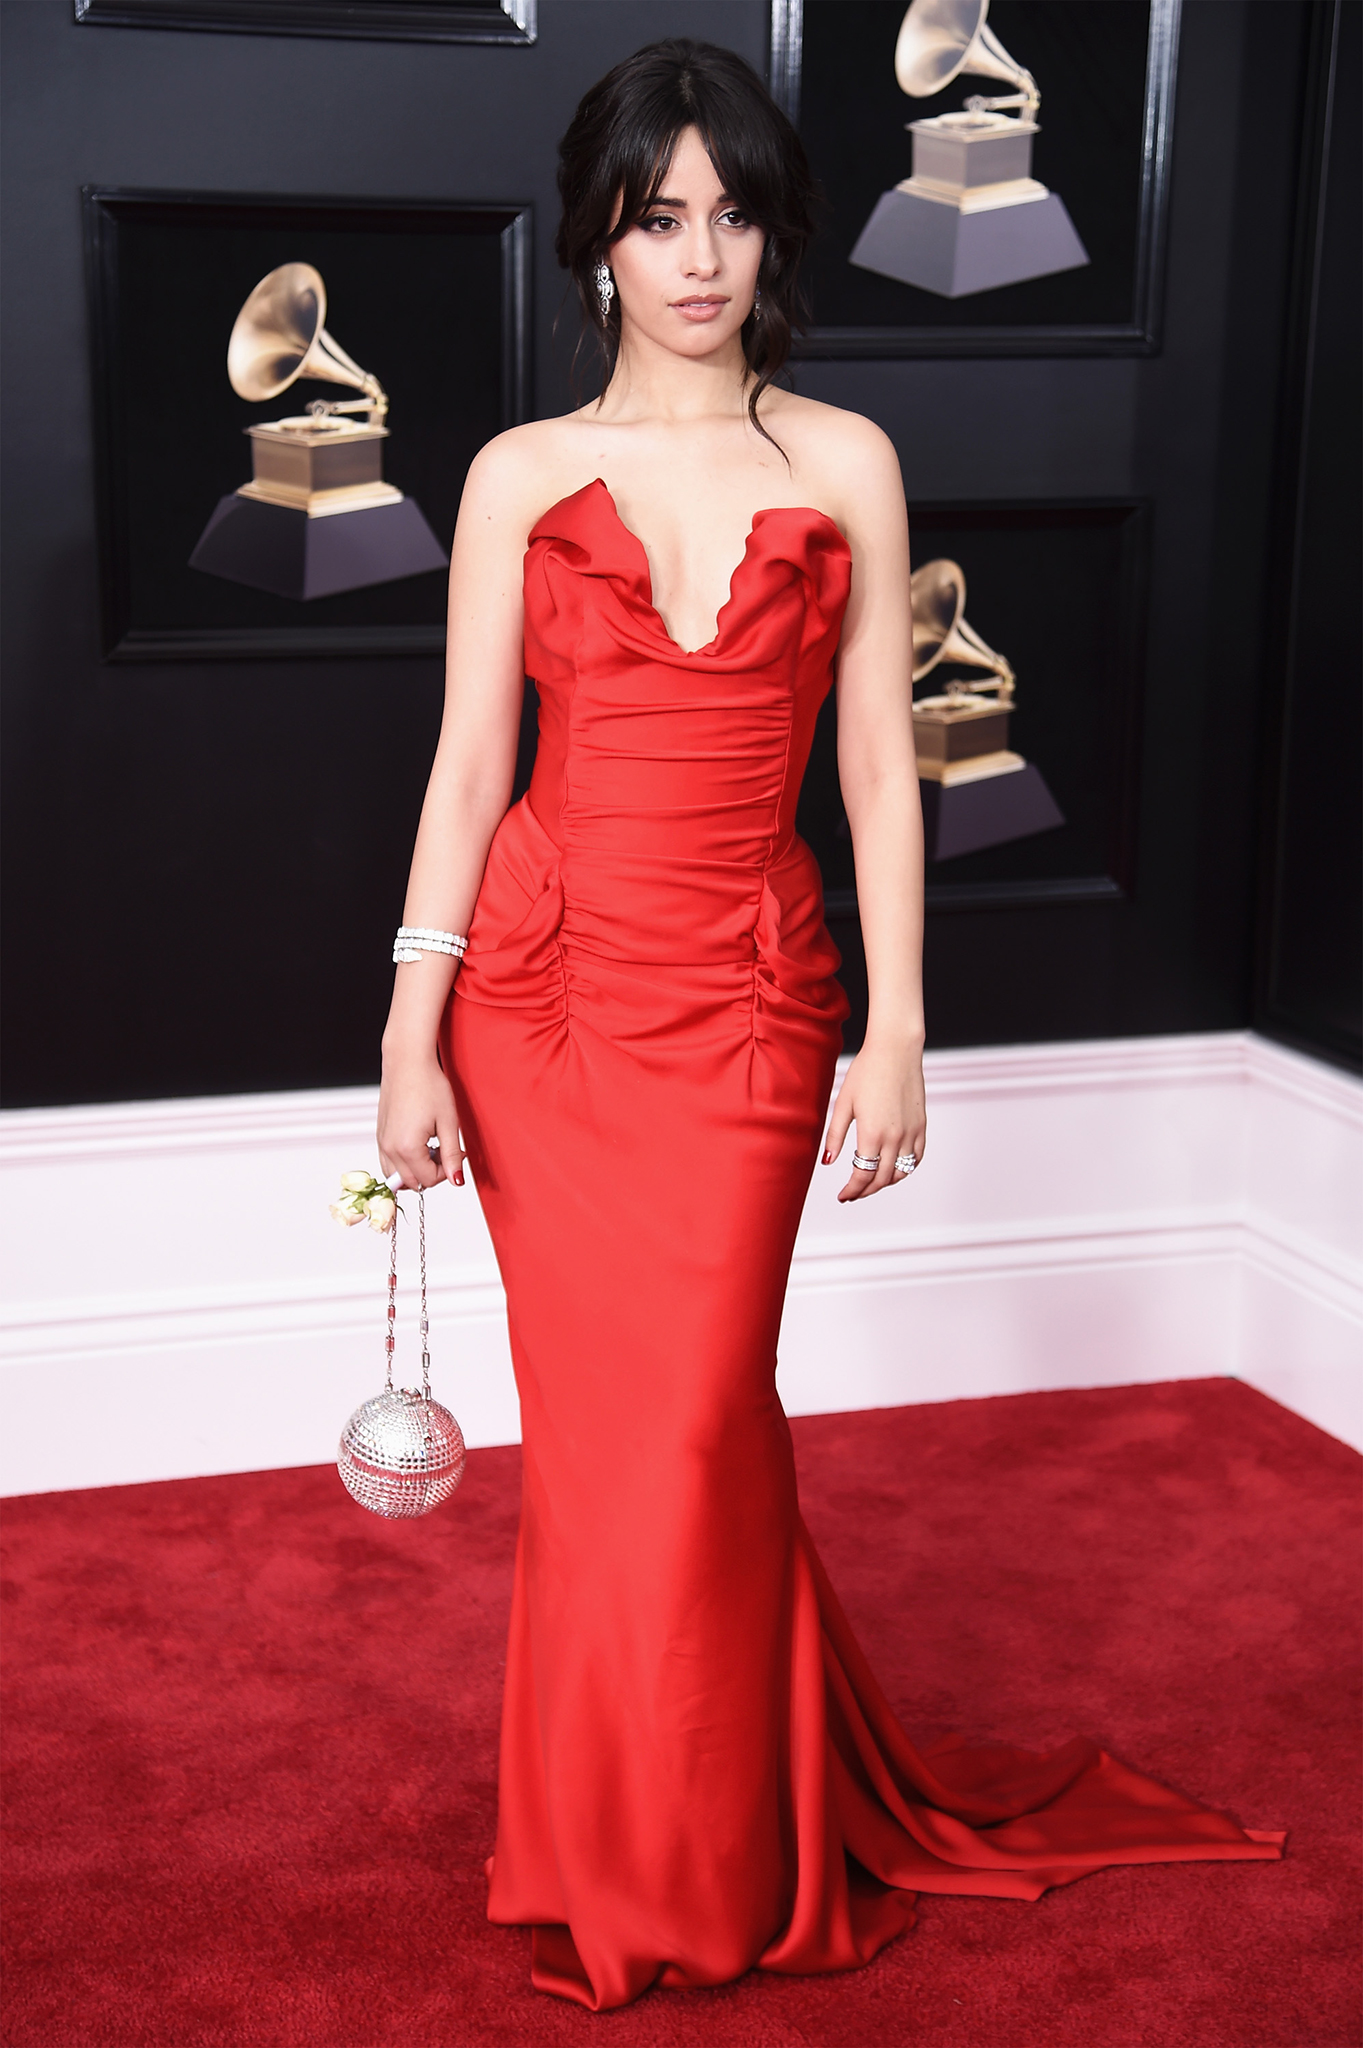 Recording artist Camila Cabello attends the 60th Annual GRAMMY Awards at Madison Square Garden on January 28, 2018 in New York City.